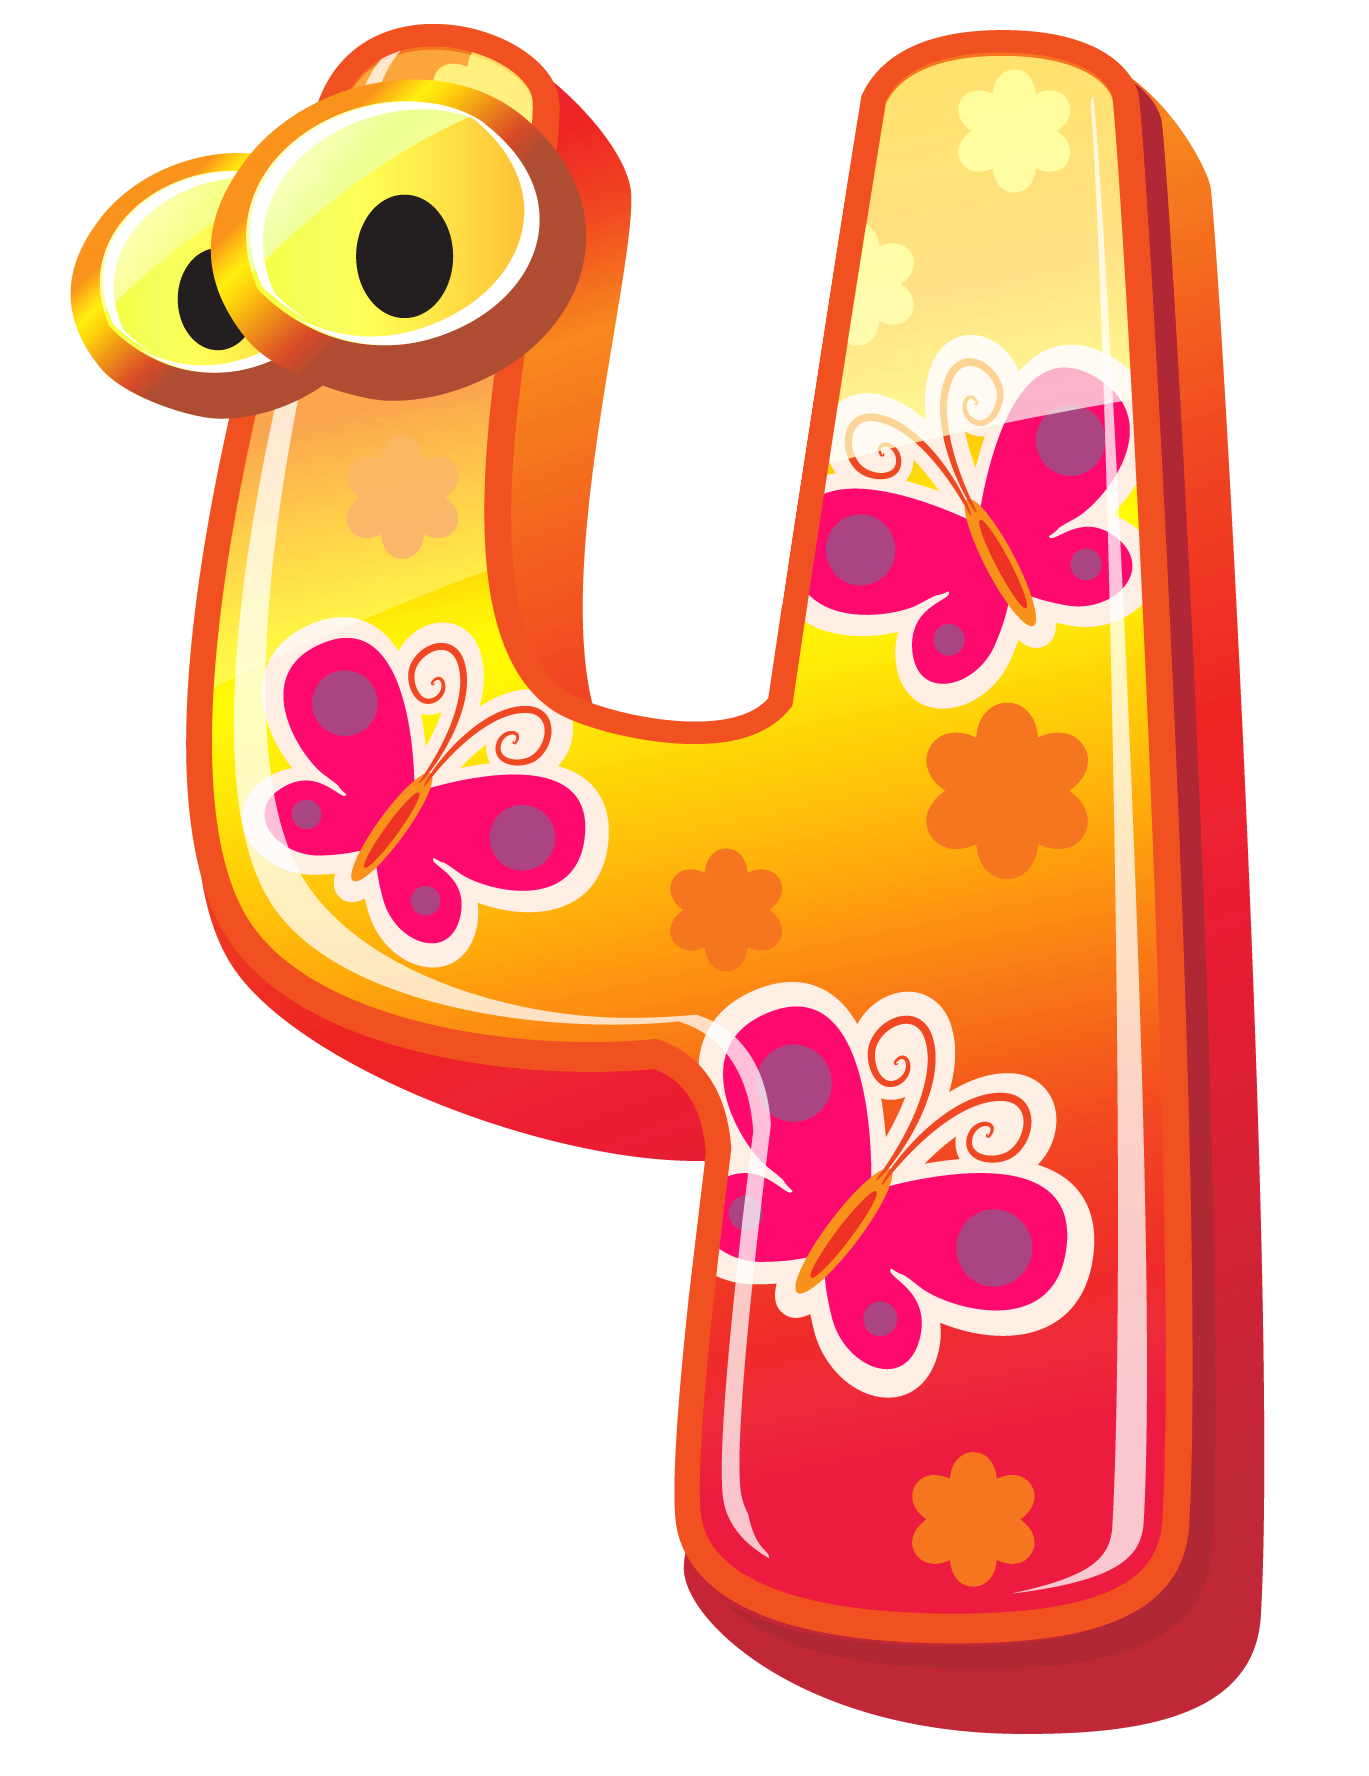 jpg transparent stock Cute number four png. Numbers clipart